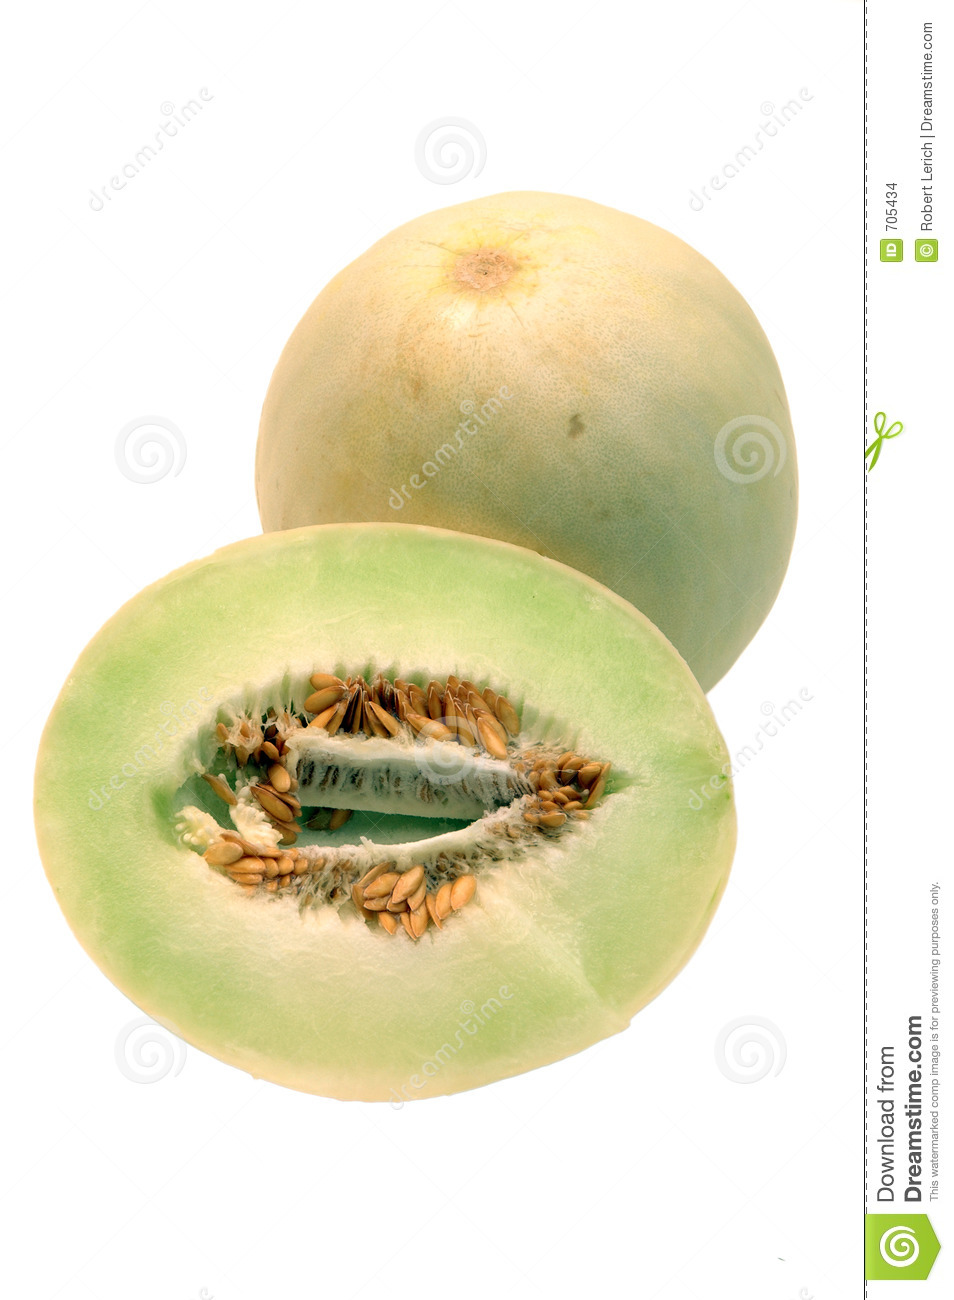 Melon Diet For Healthy Weight Loss